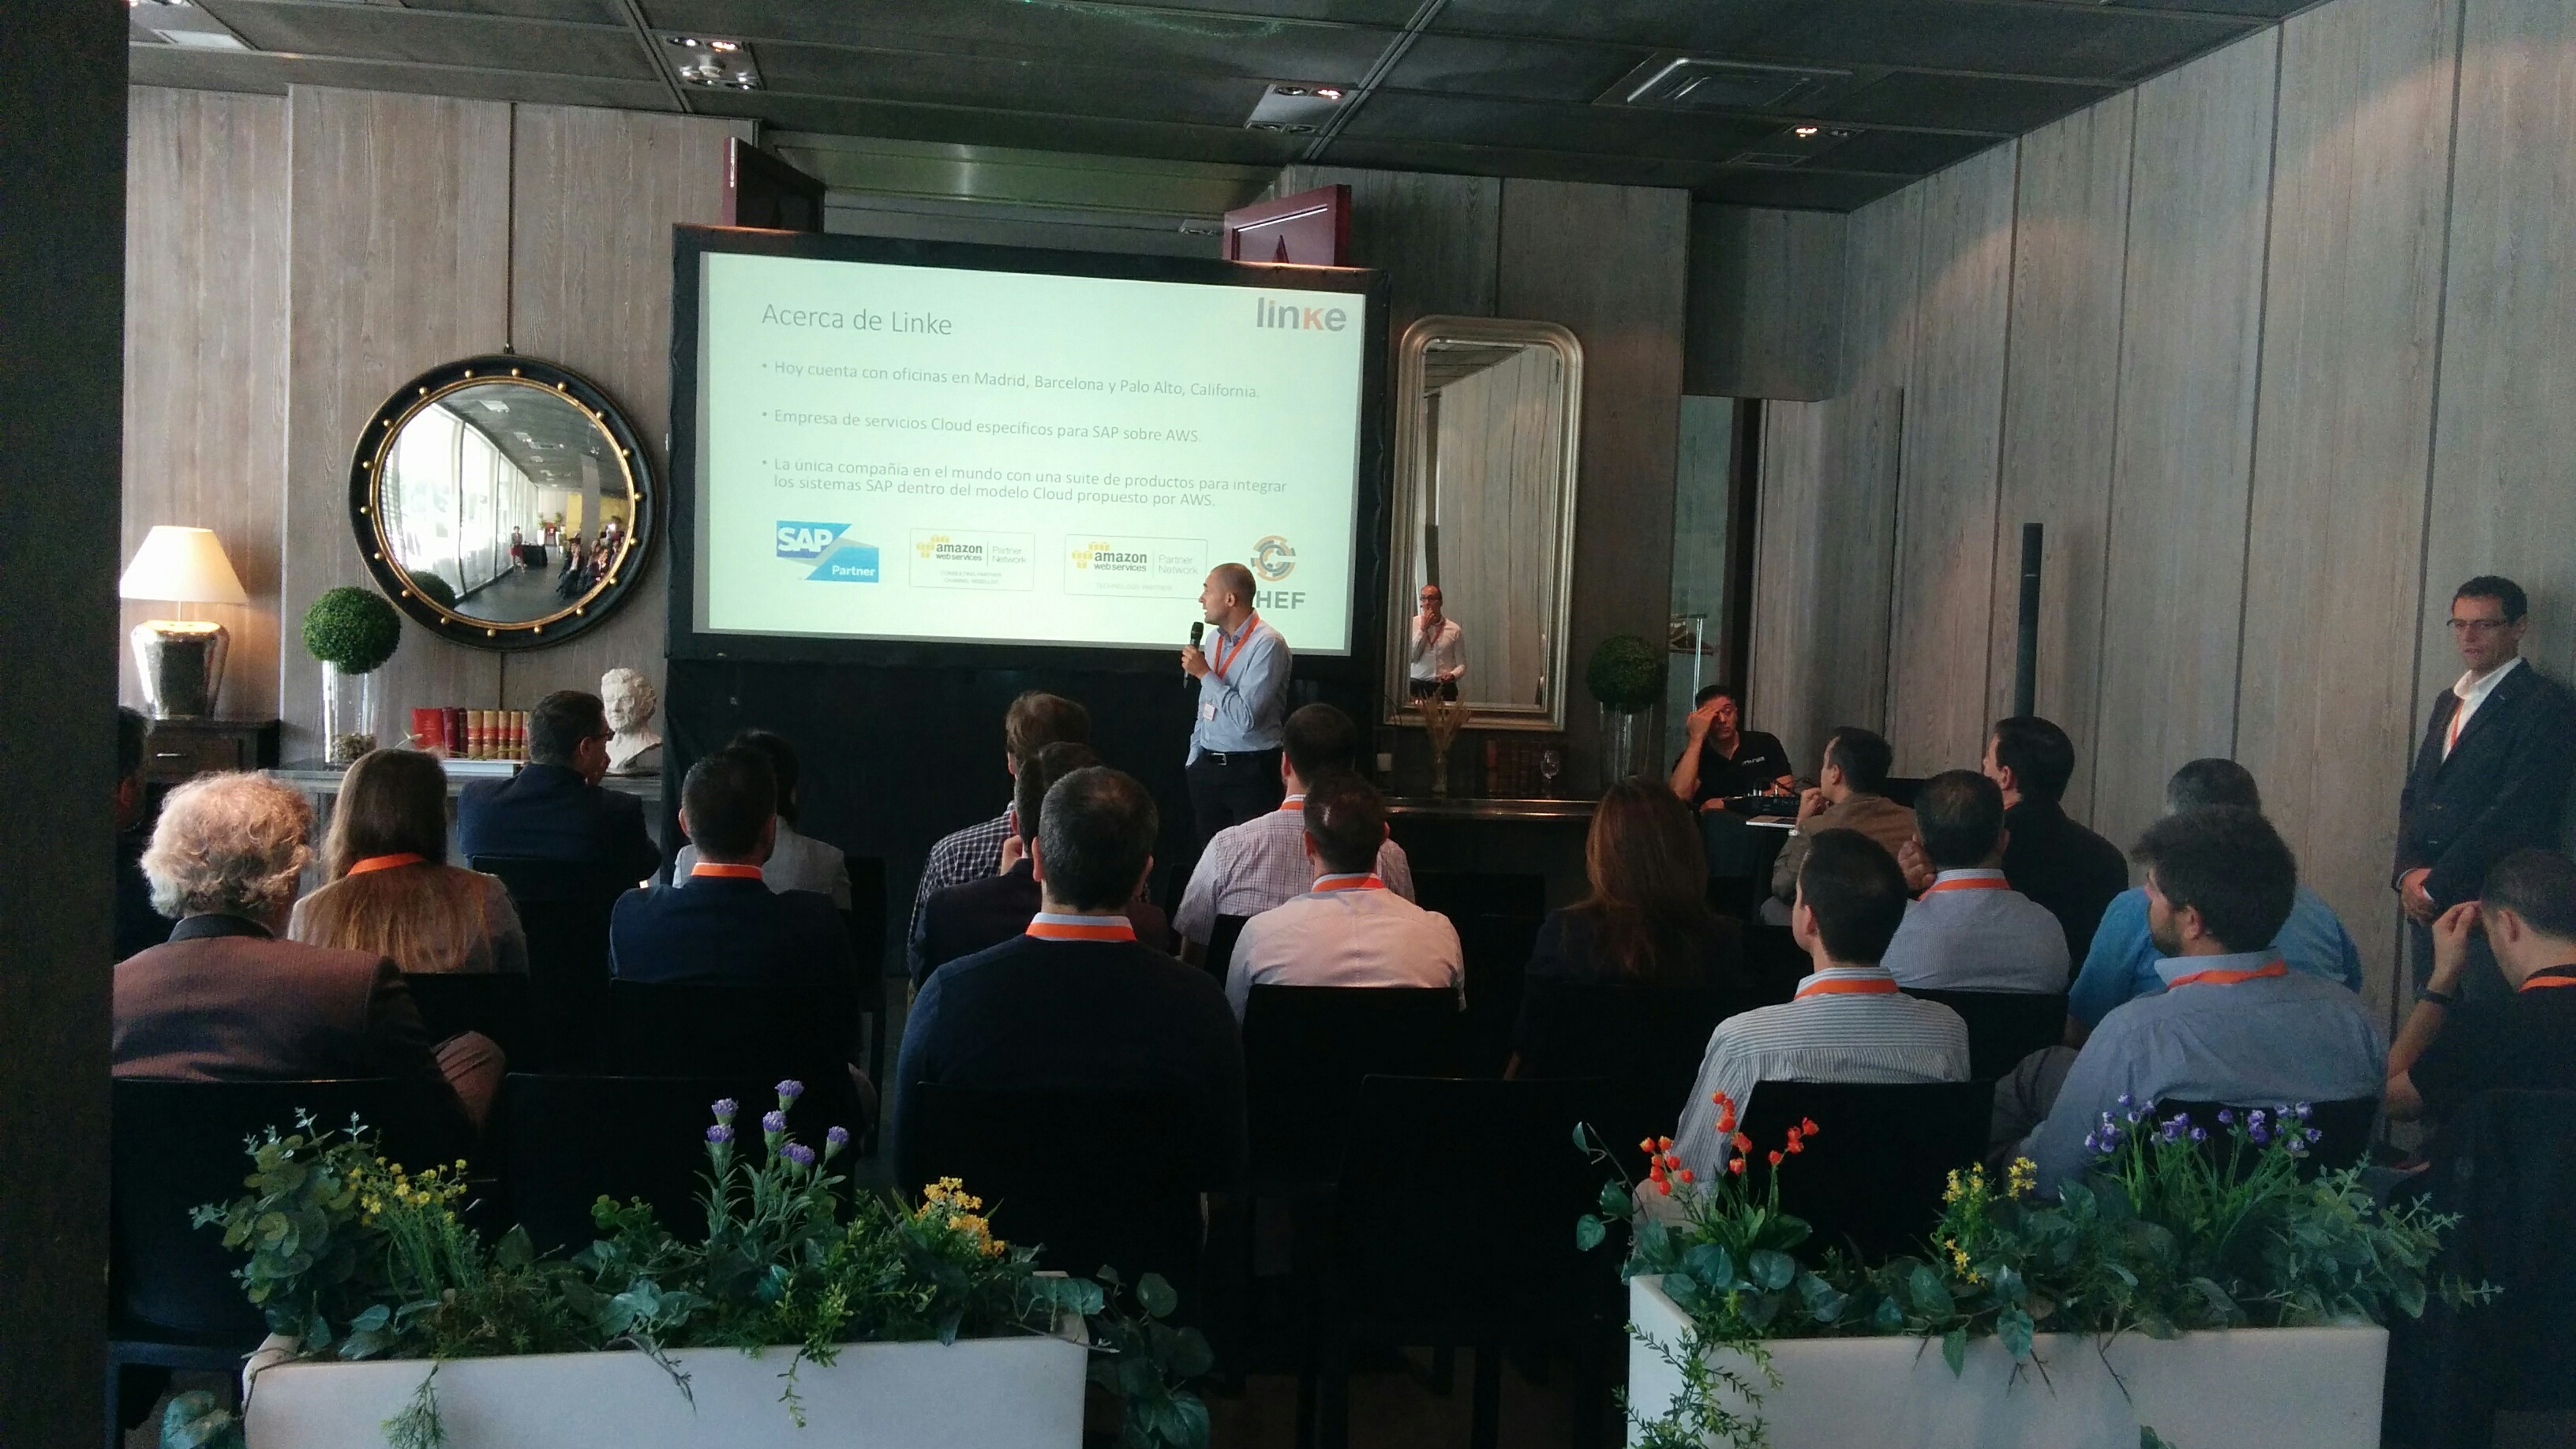 evento-SAP-AWS-linke.jpg